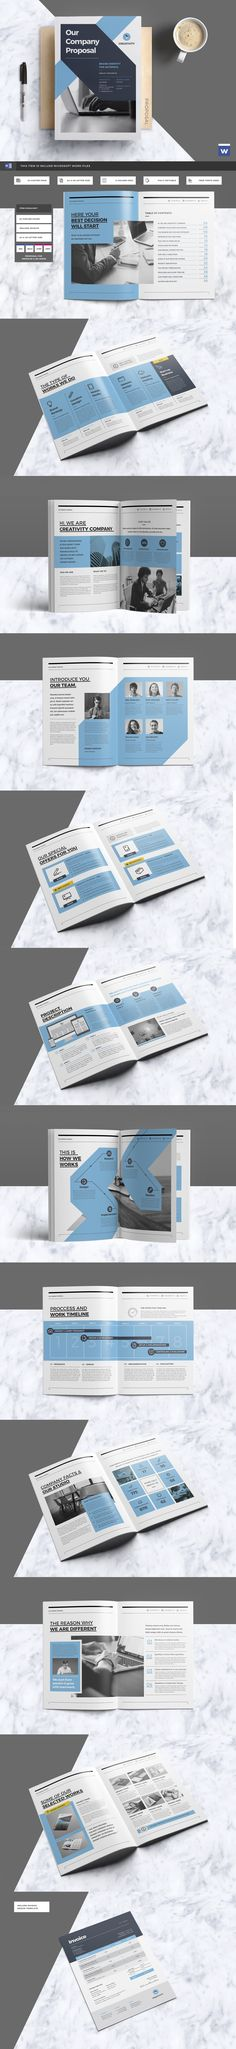 Clean & Professional Proposal Template With Include A4 & US Letter Size